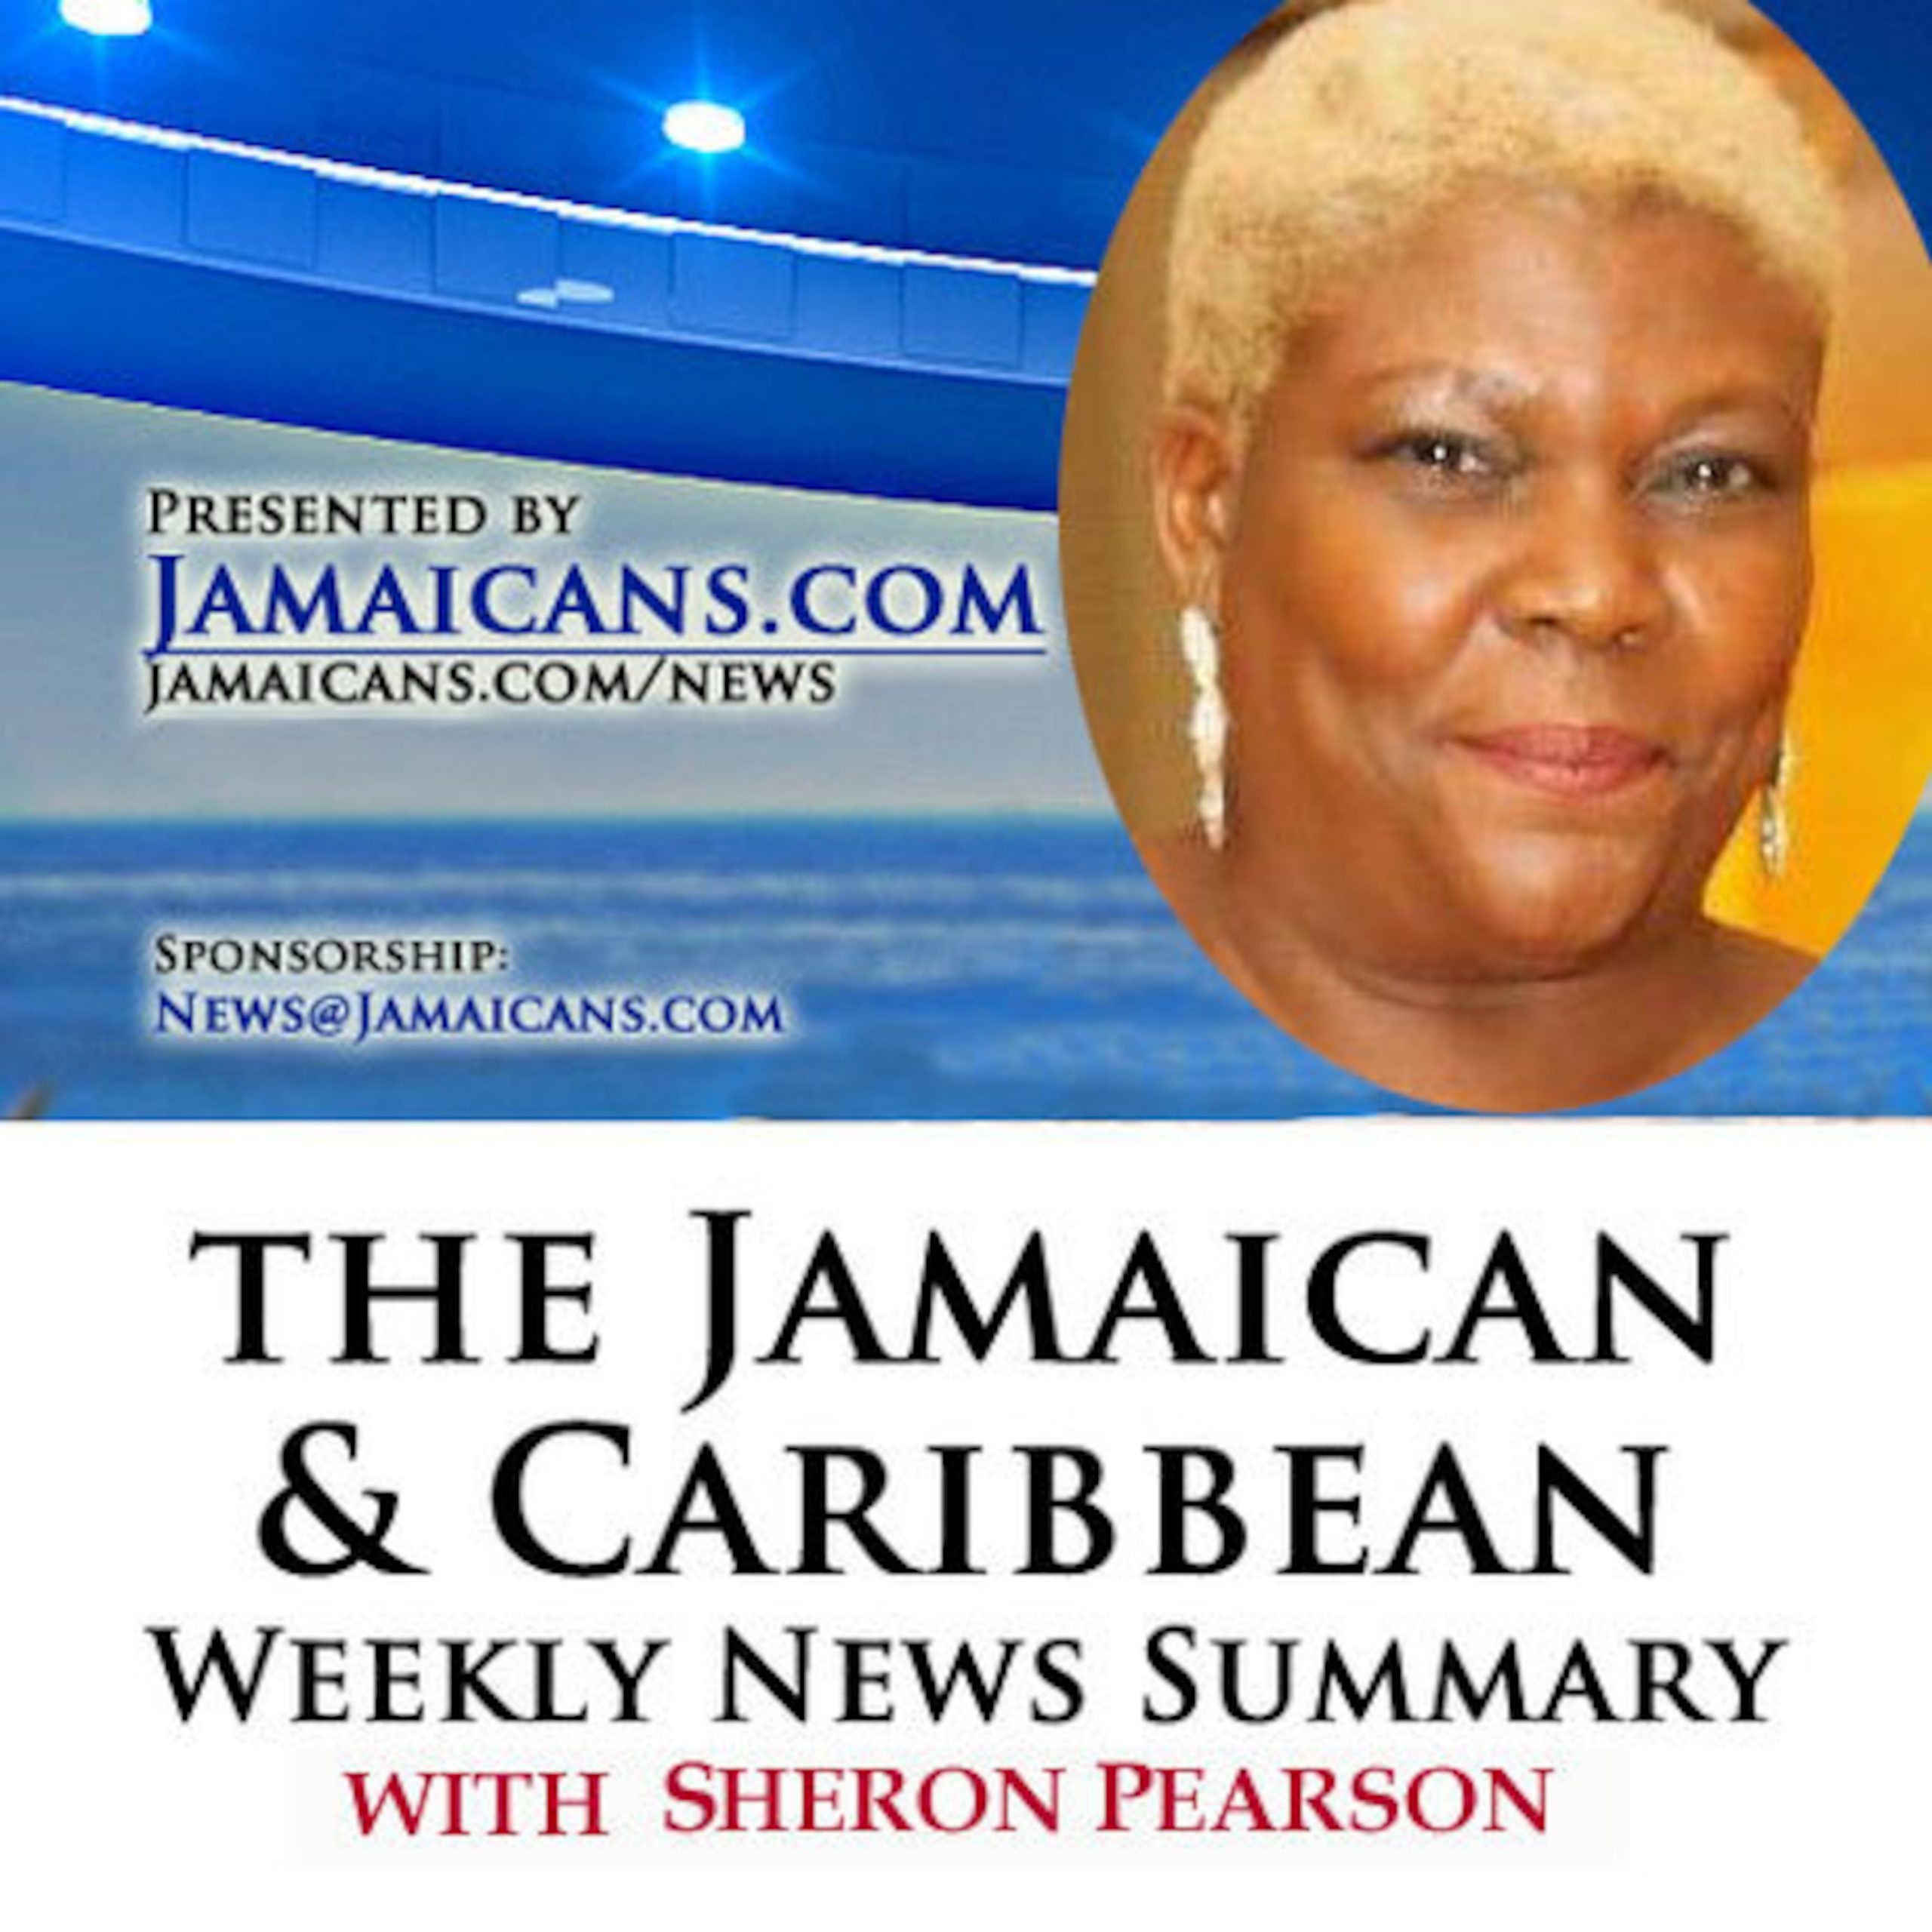 Listen to the Podcast of The Jamaica & Caribbean Weekly News Summary for the week ending May 15, 2020